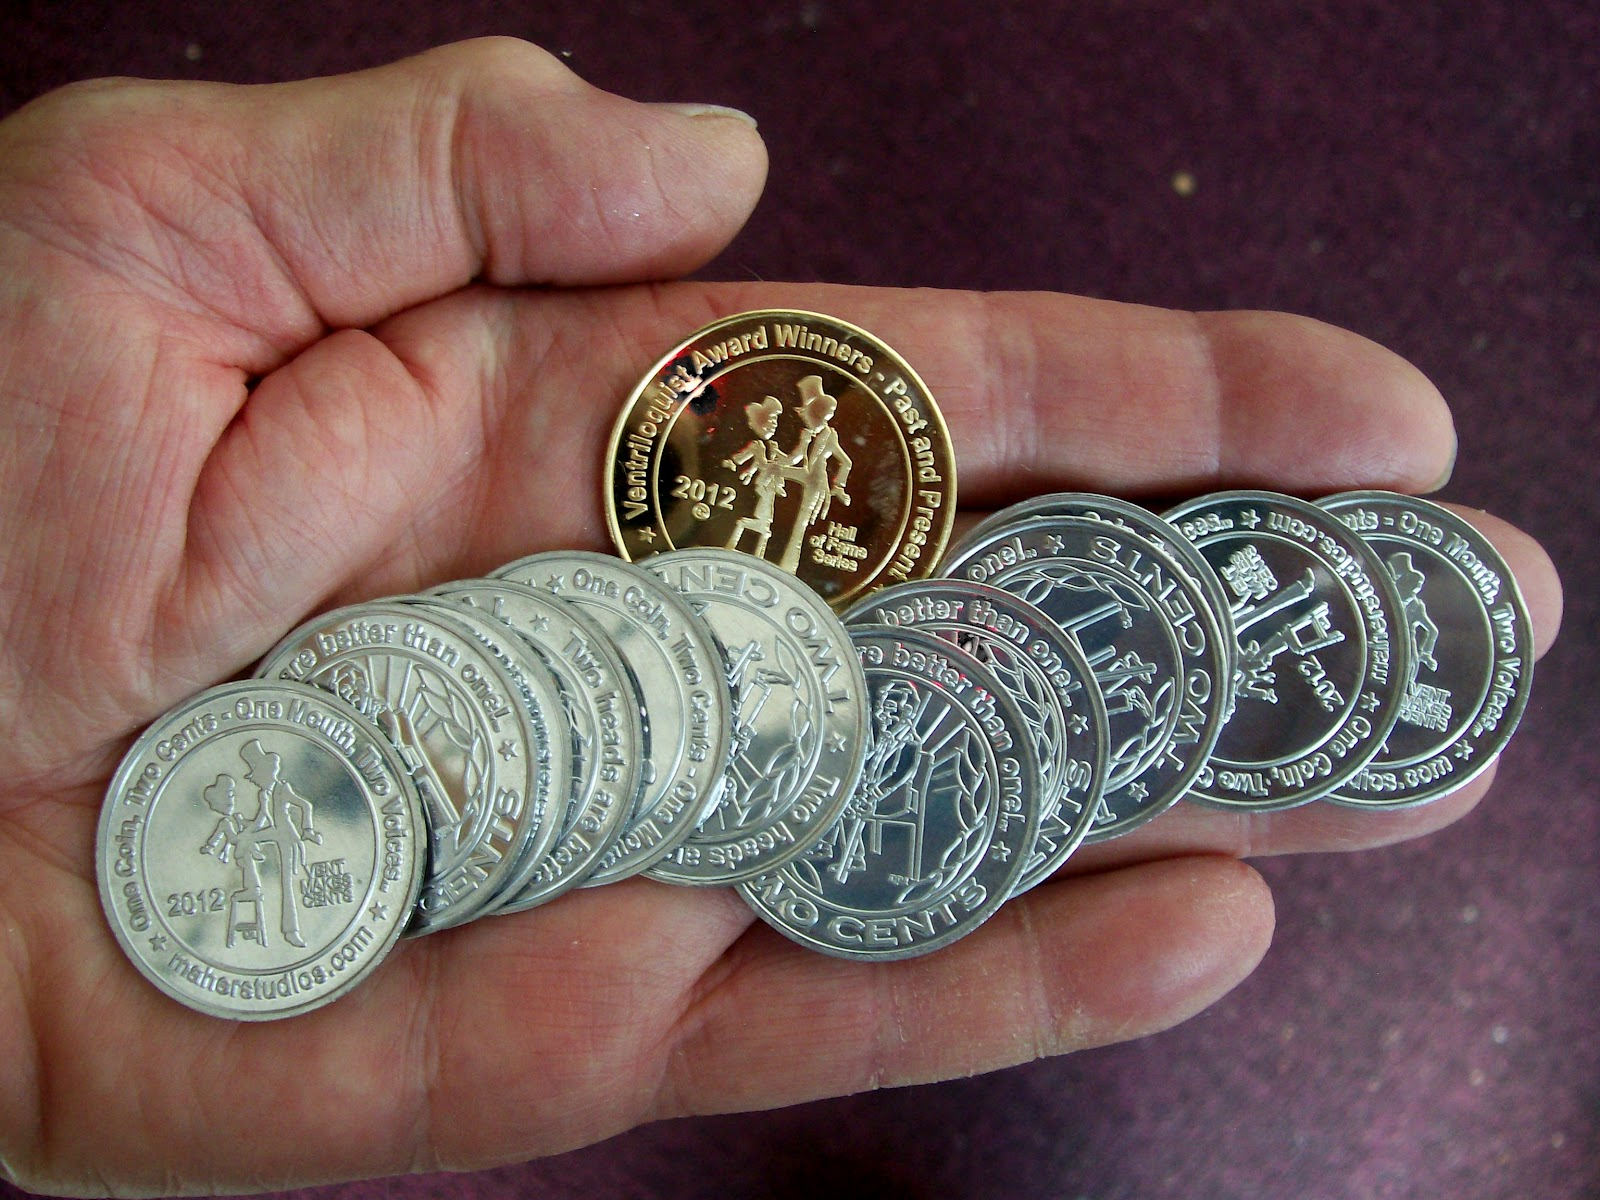 What two coins add up to 35 cents if one of them isn't a quarter?